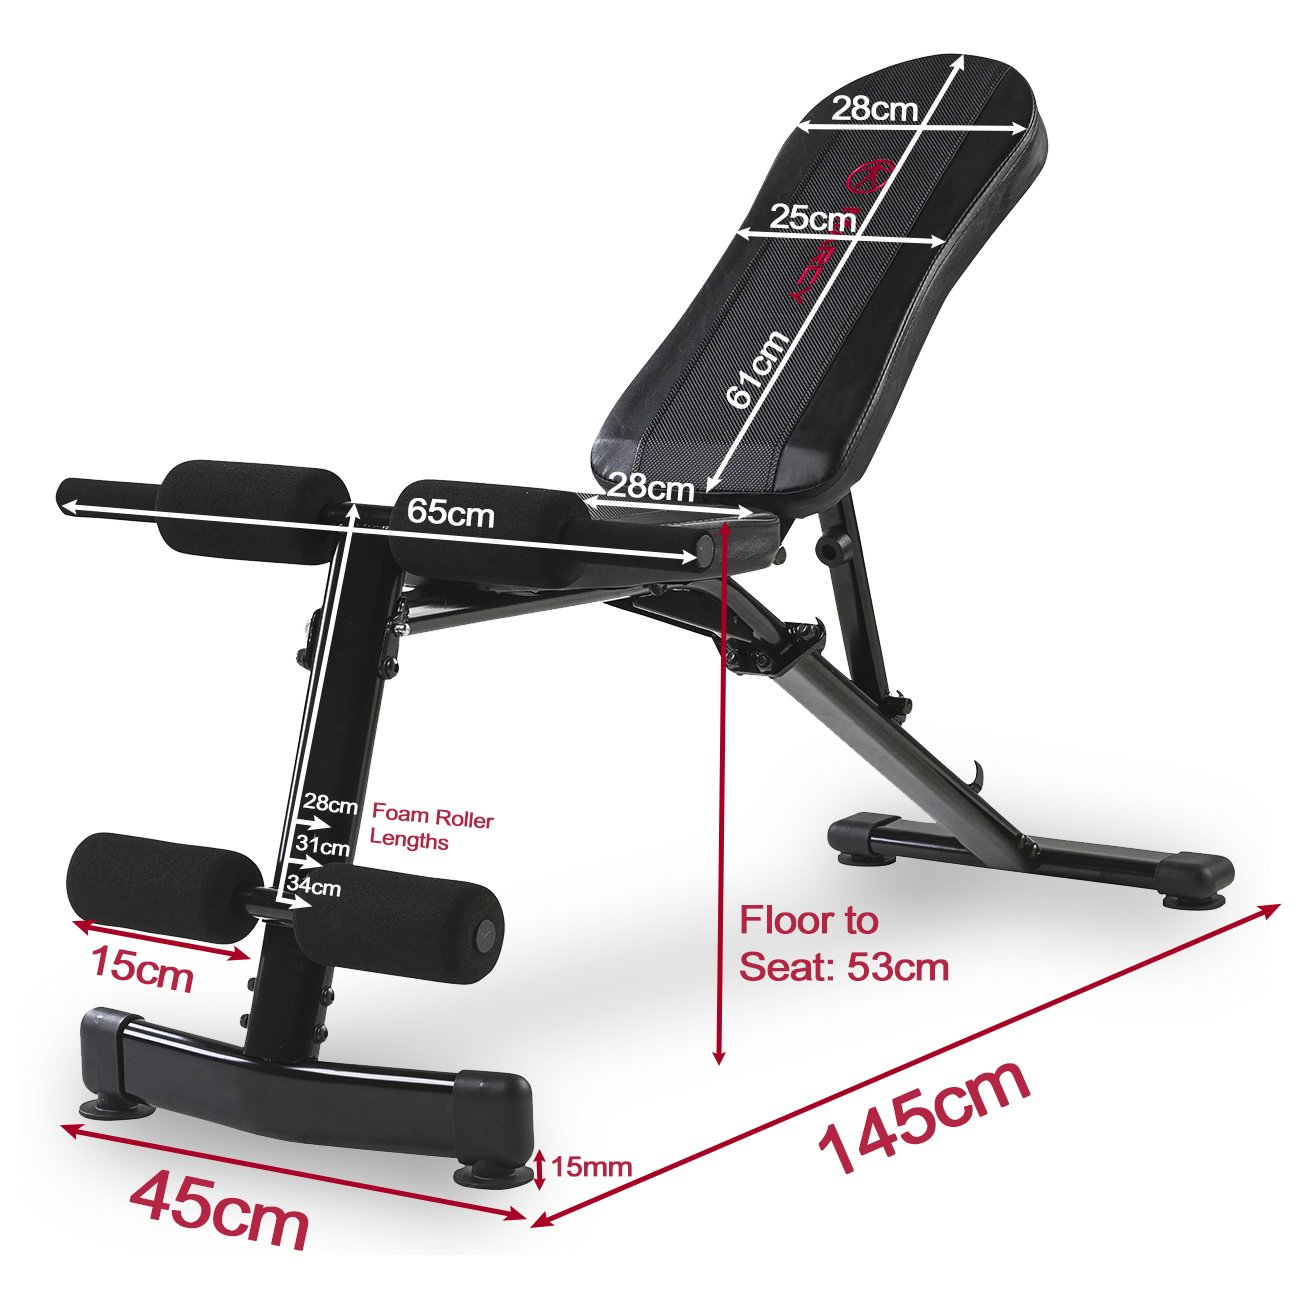 Marcy Eclipse UB3000 - Banco ajustable (135 kg), color negro/rojo: Amazon.es: Deportes y aire libre